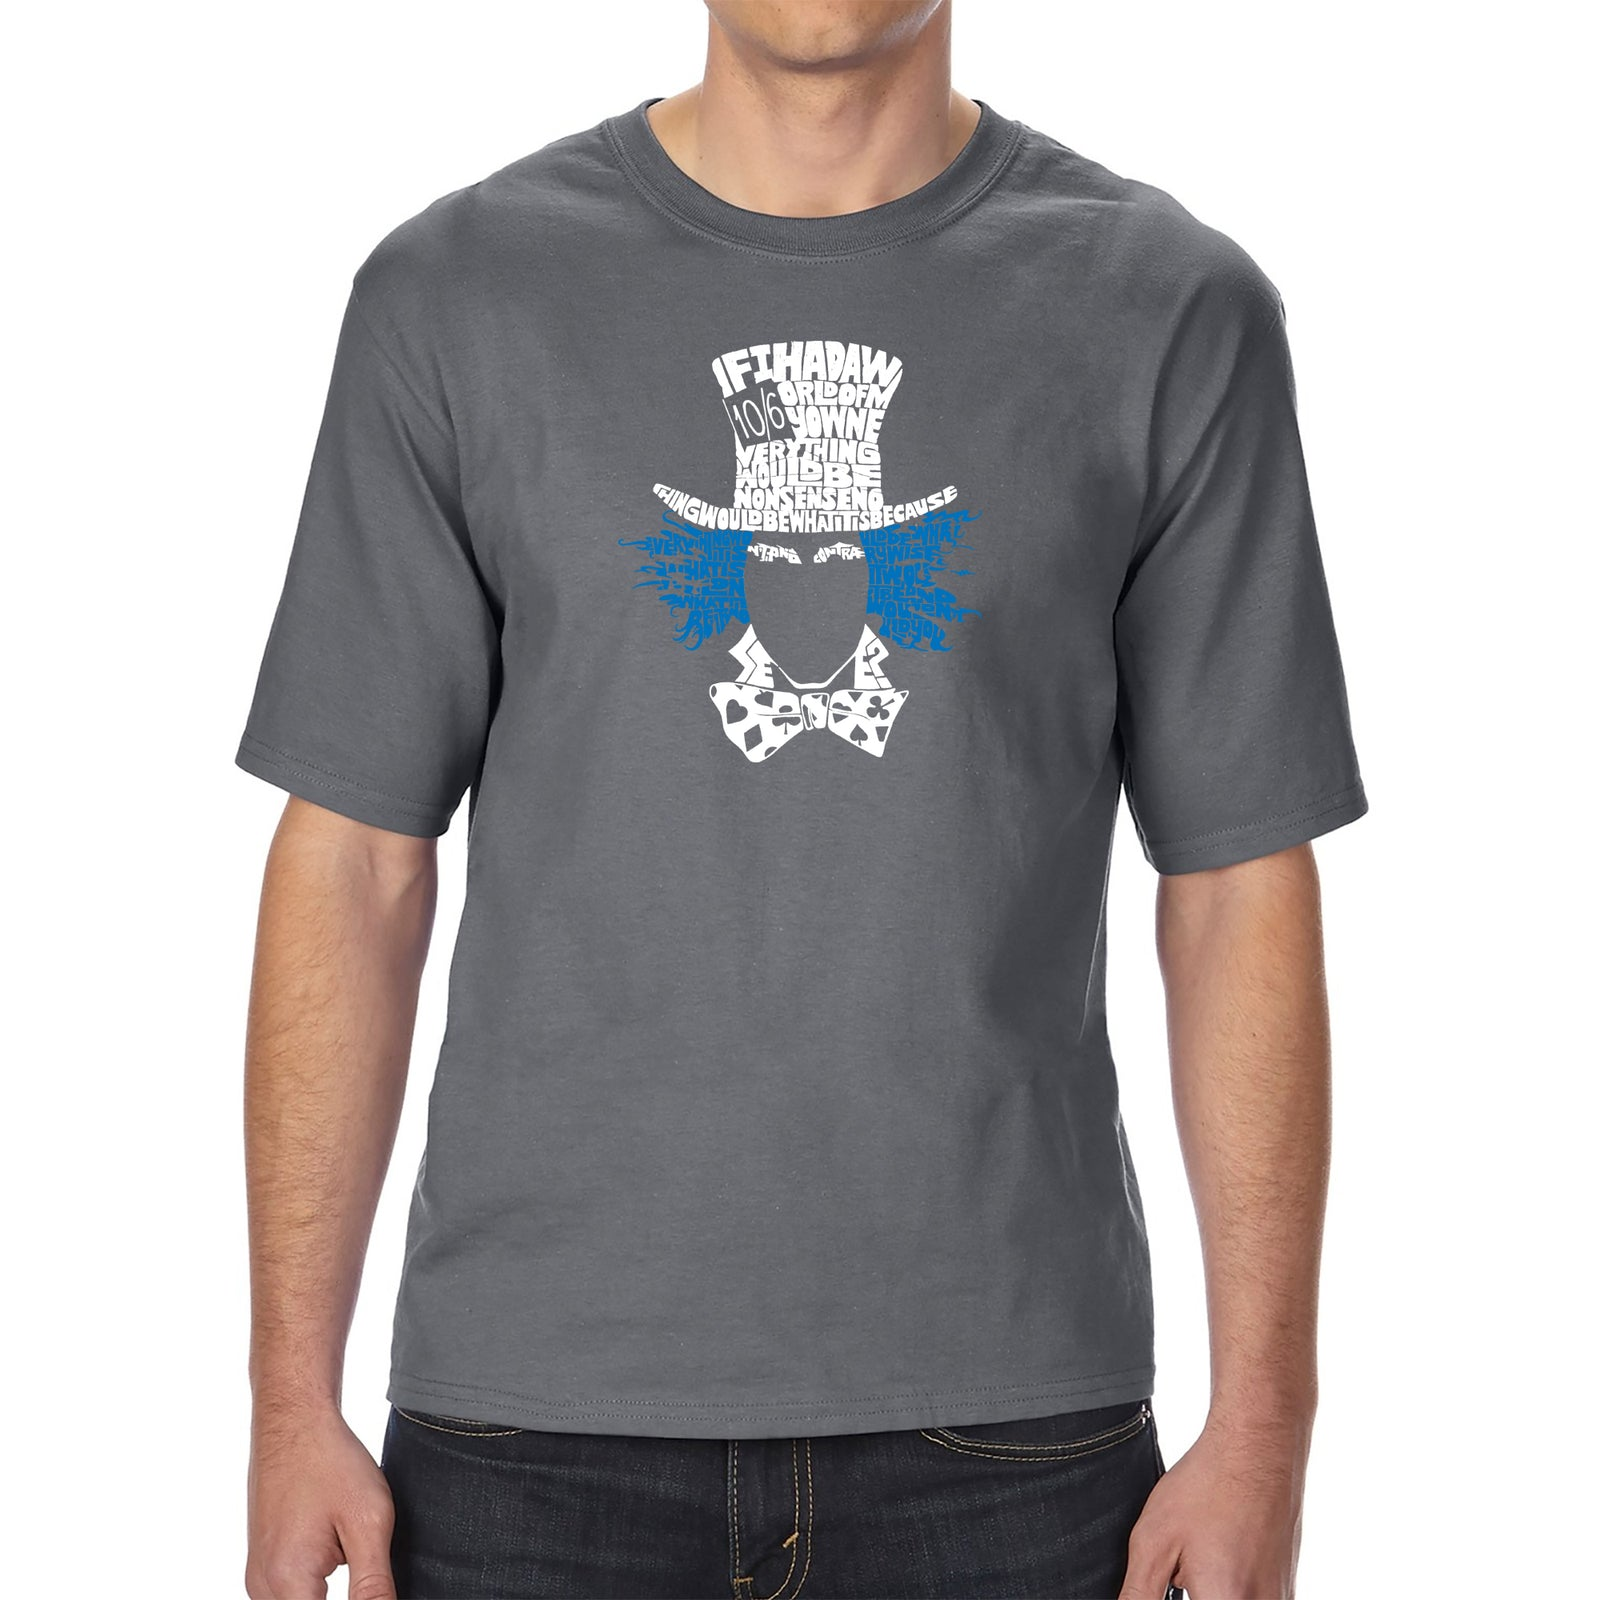 Men's Tall and Long Word Art T-shirt - The Mad Hatter